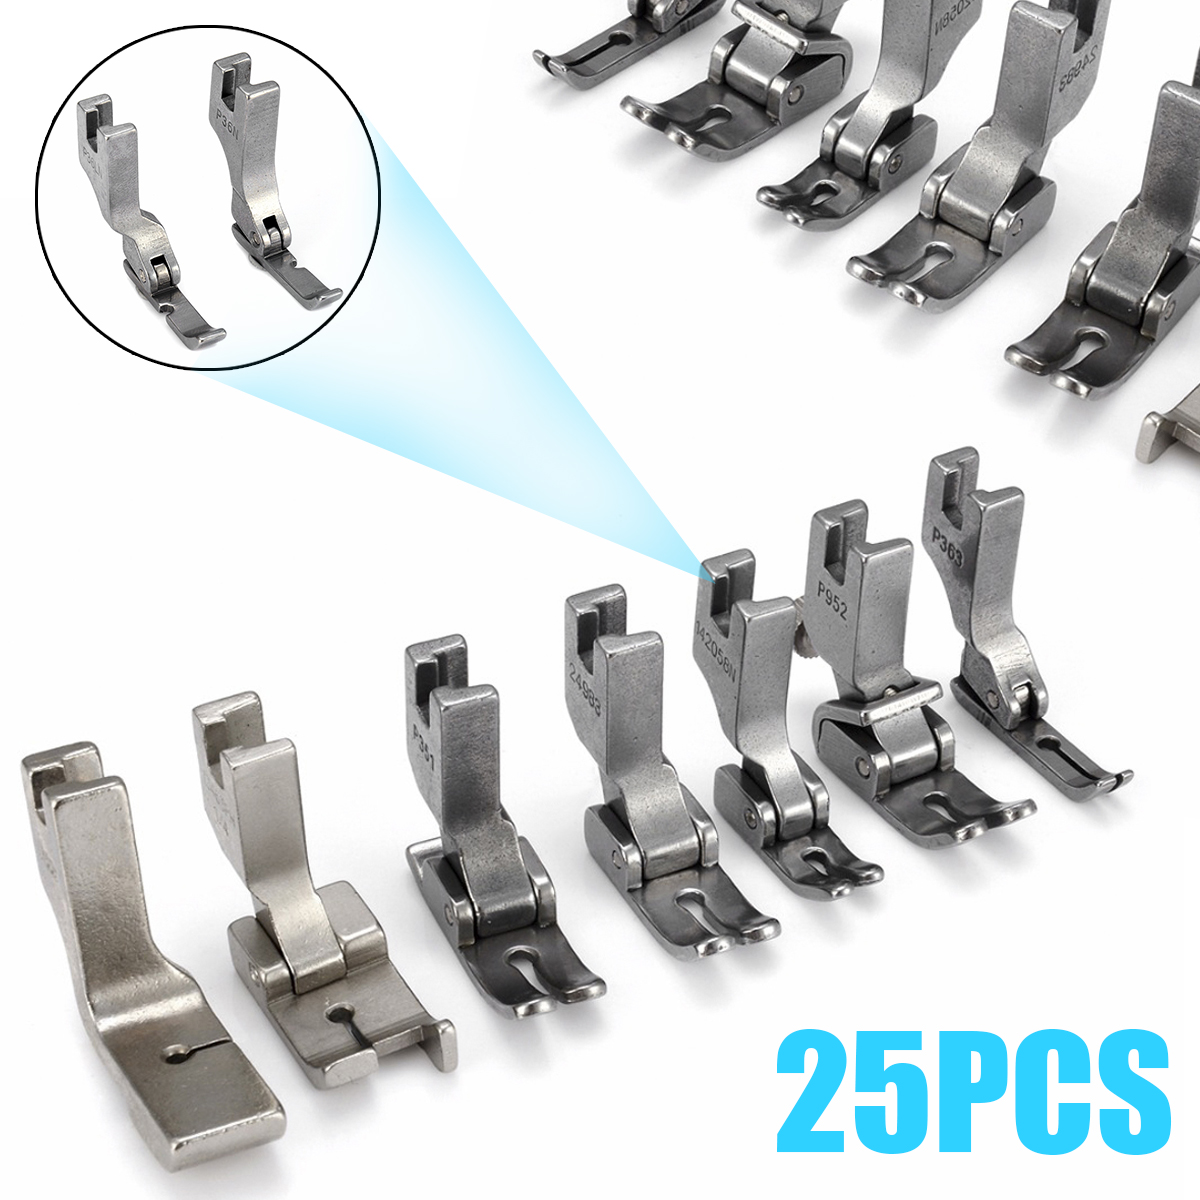 25pcs Mini Presser Foot Feet Set For JUKI DDL-5550 8500 8700 Industrial Sewing Machine Accessories